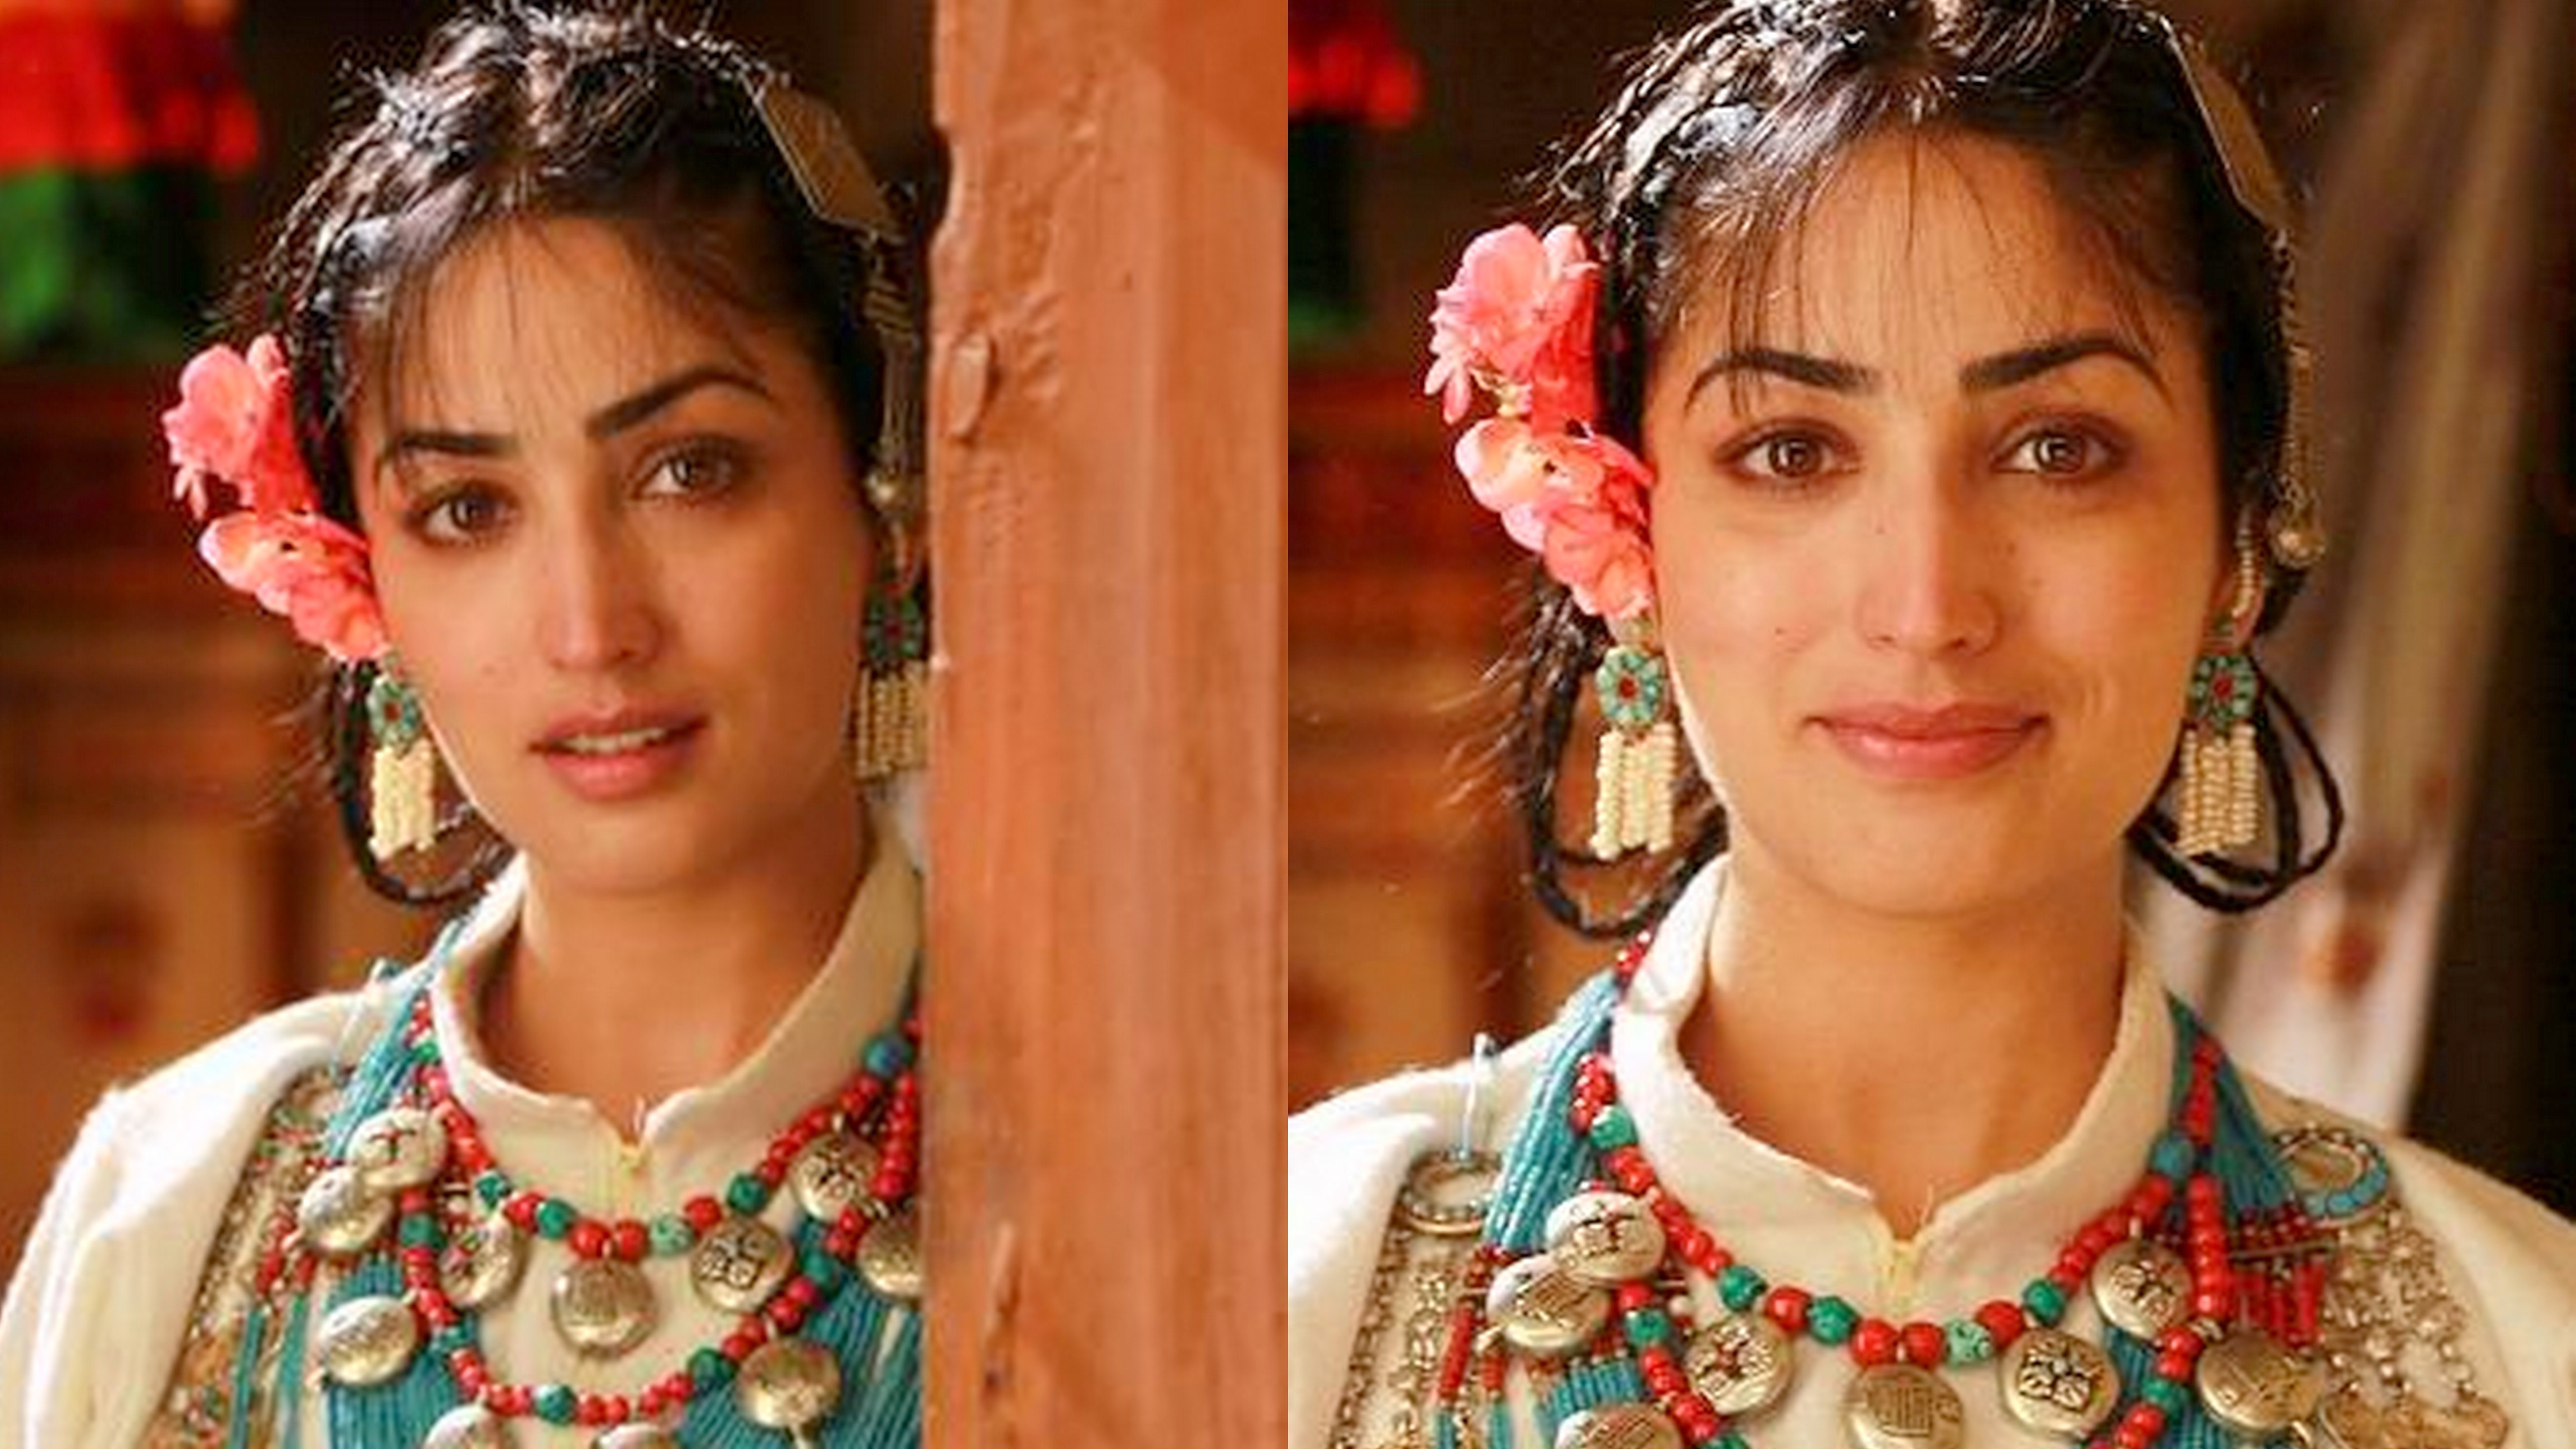 Yami Gautam to be seen in different age groups in 'Sanam Re'